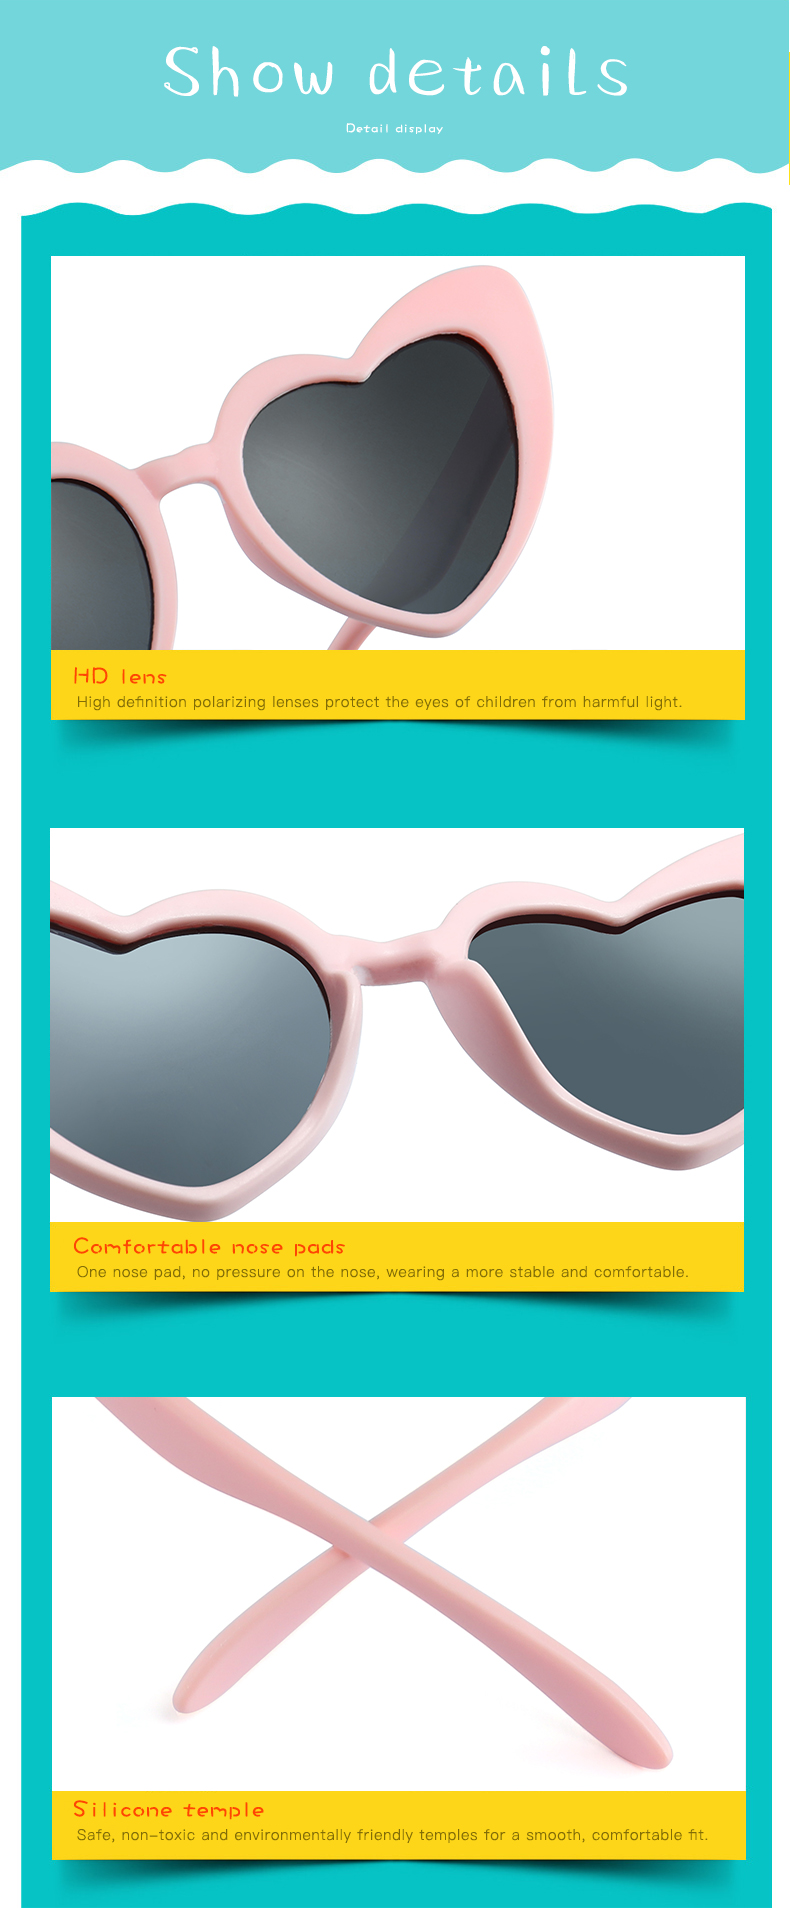 HTB11BjdacfrK1RjSszcq6xGGFXa1 - LongKeeper baby girl sunglasses for children heart TR90 black pink red heart sun glasses for kids polarized flexible uv400